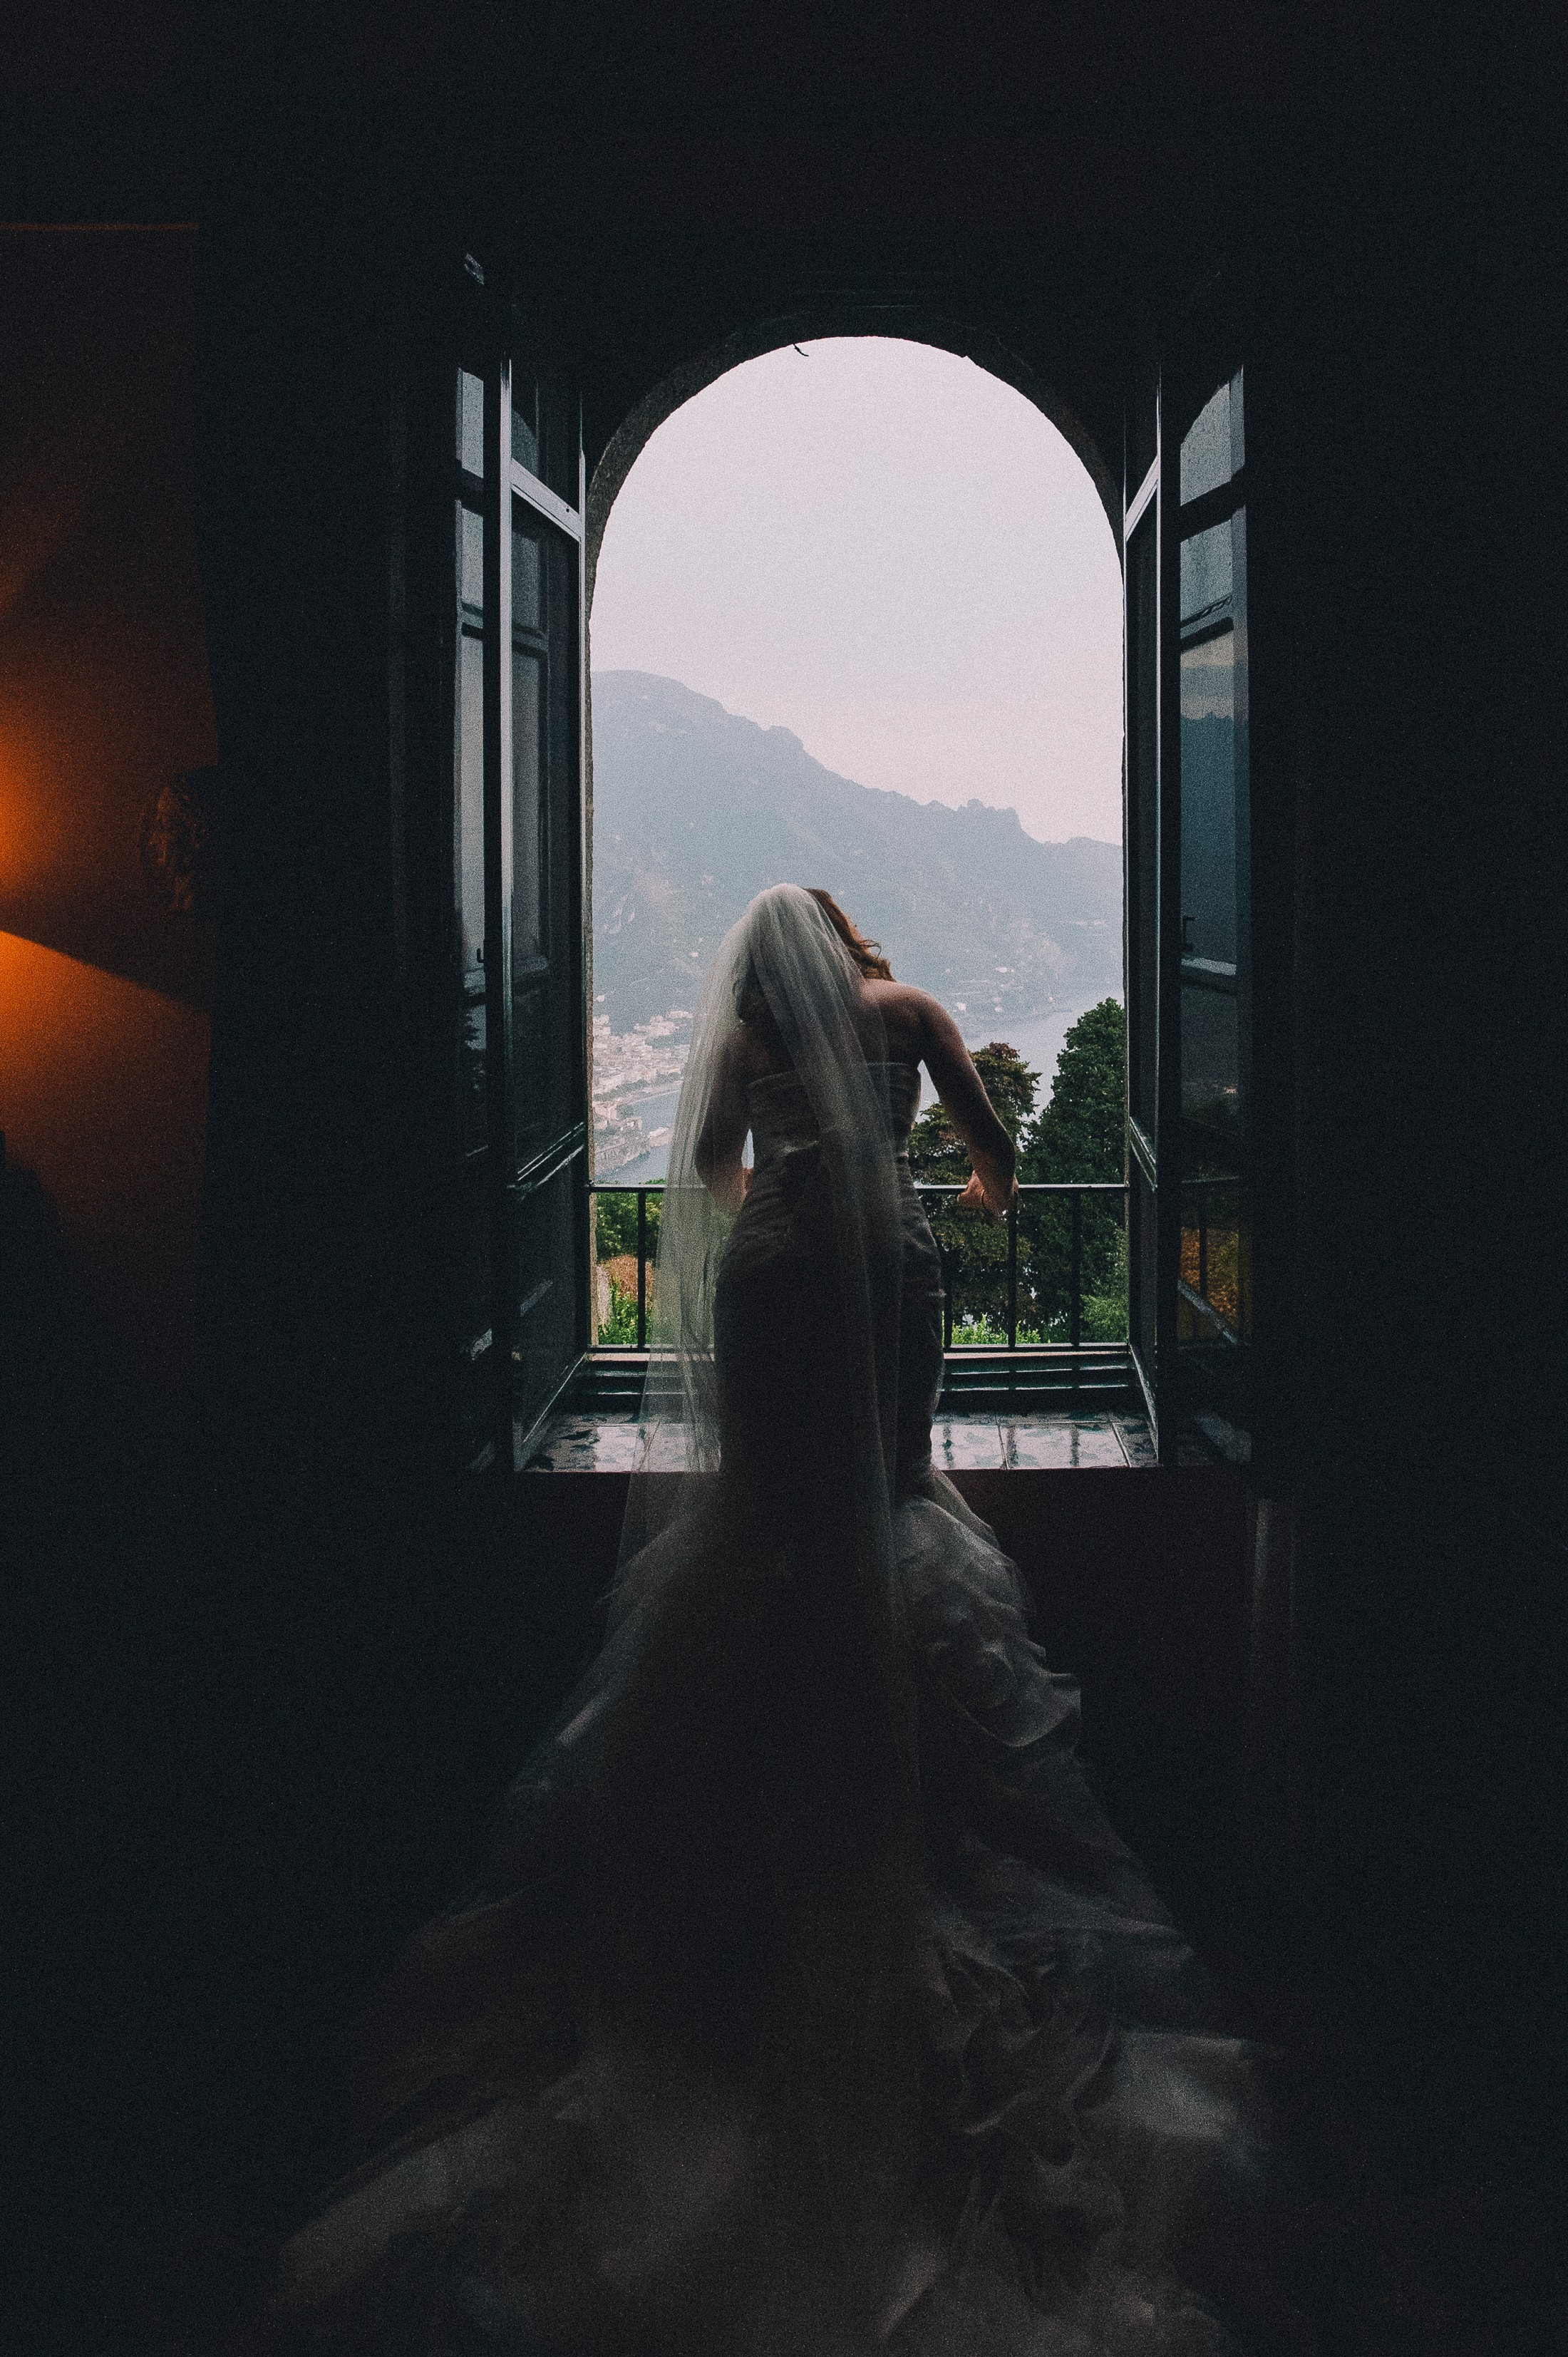 the bride at the window